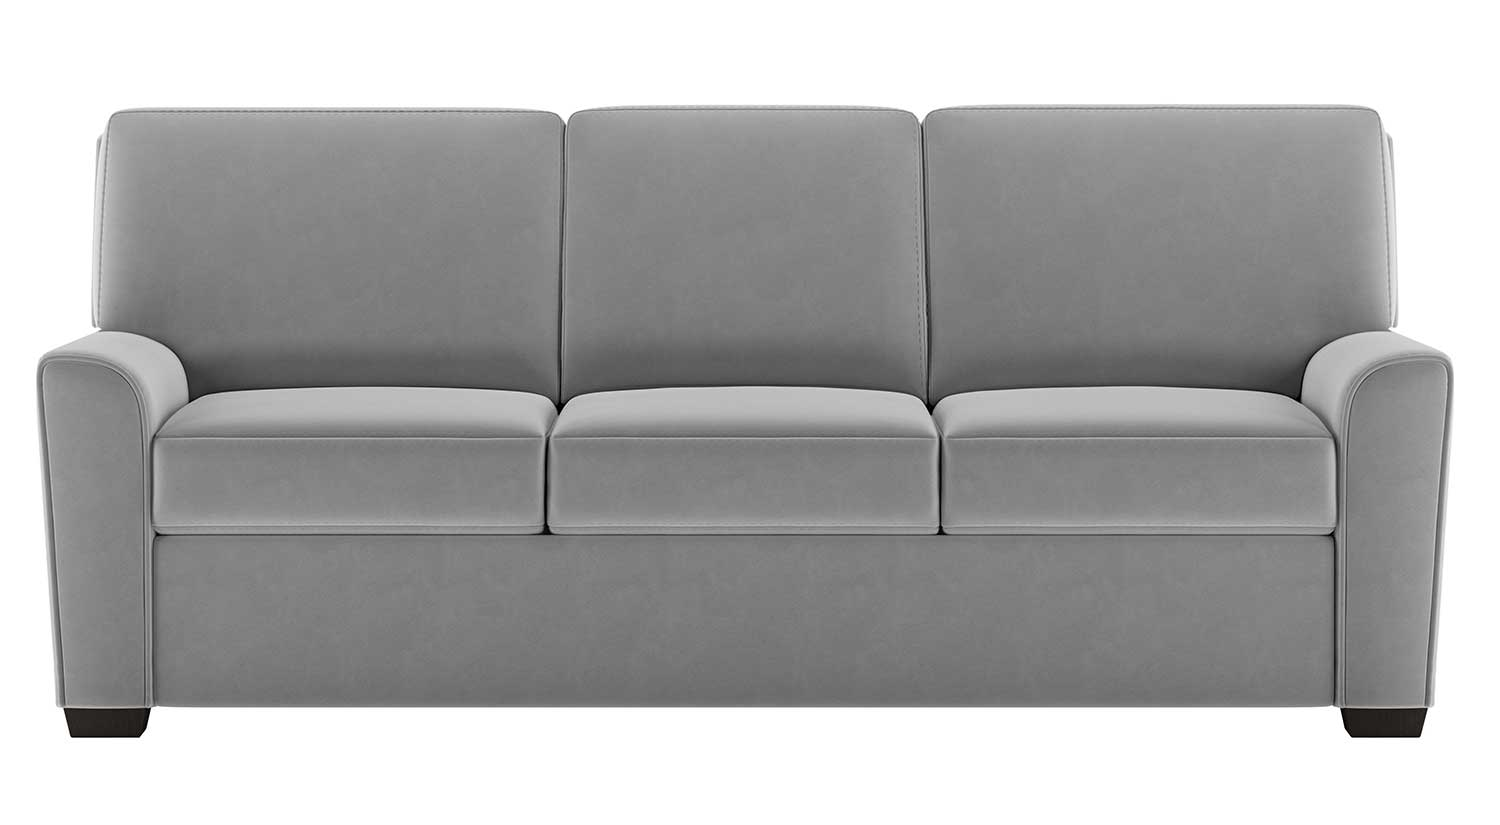 Circle Furniture Sleeper Sofa Wwwstkittsvillacom